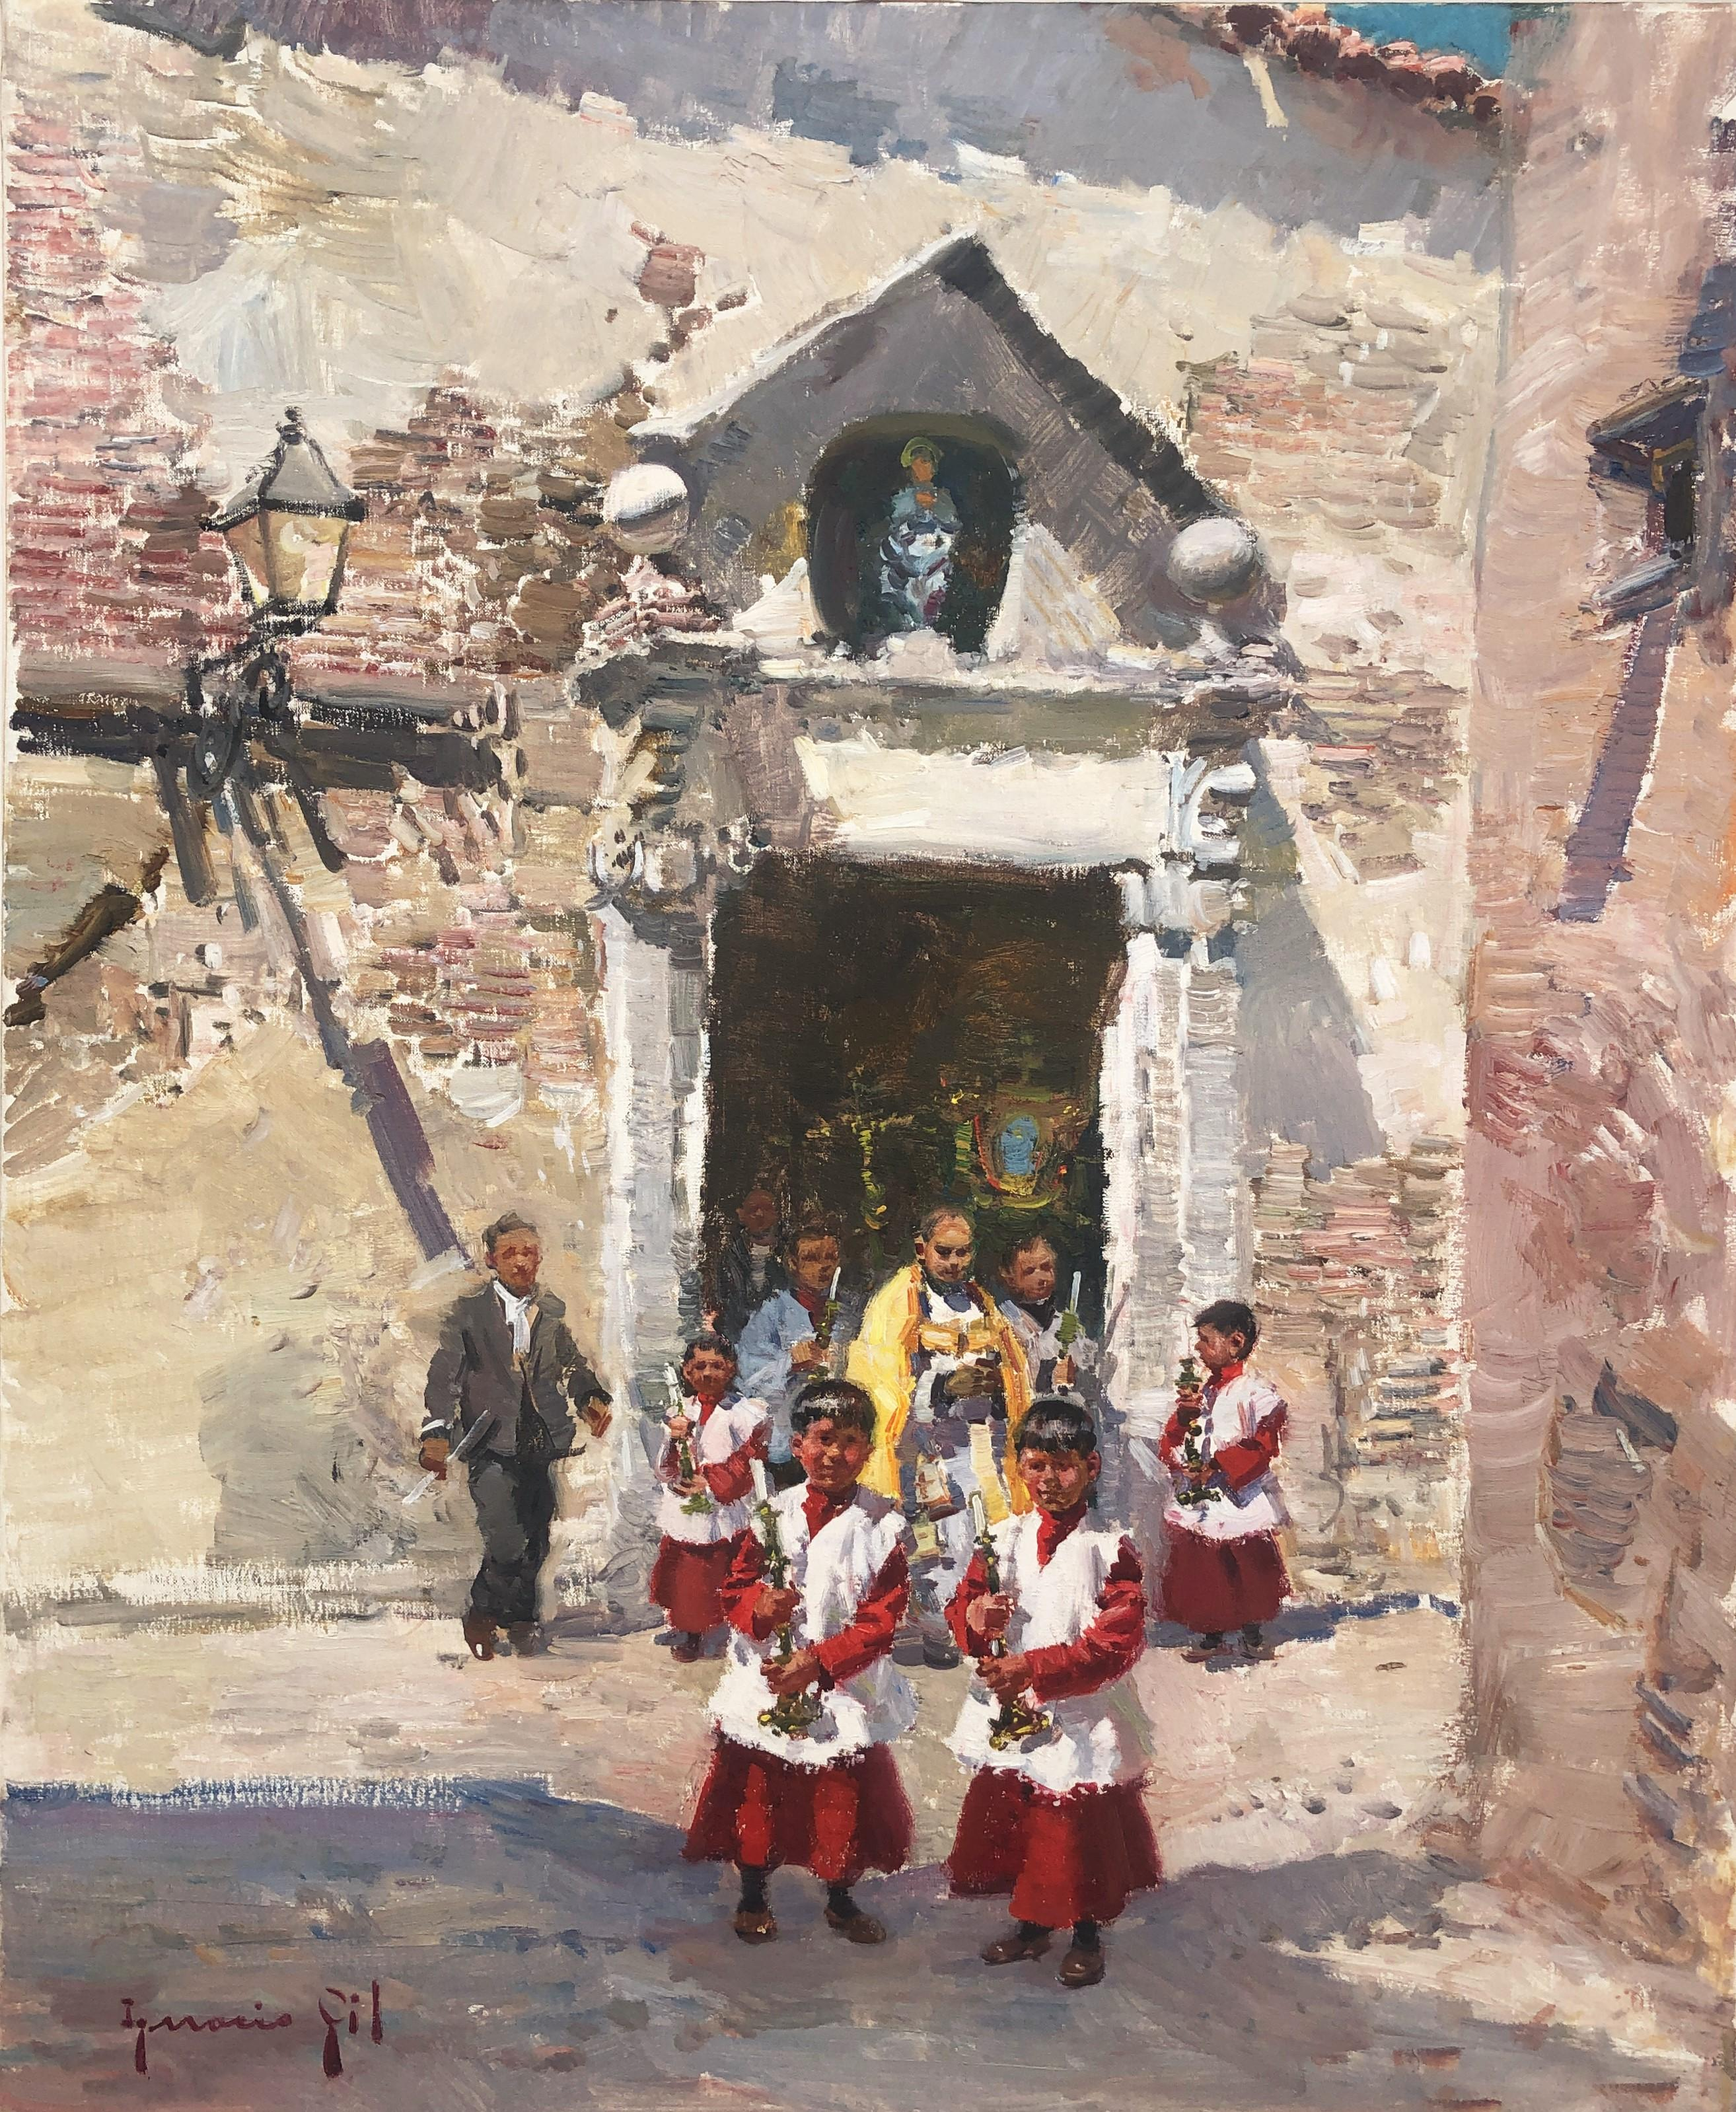 Procession in Ibiza Spain original oil on canvas painting